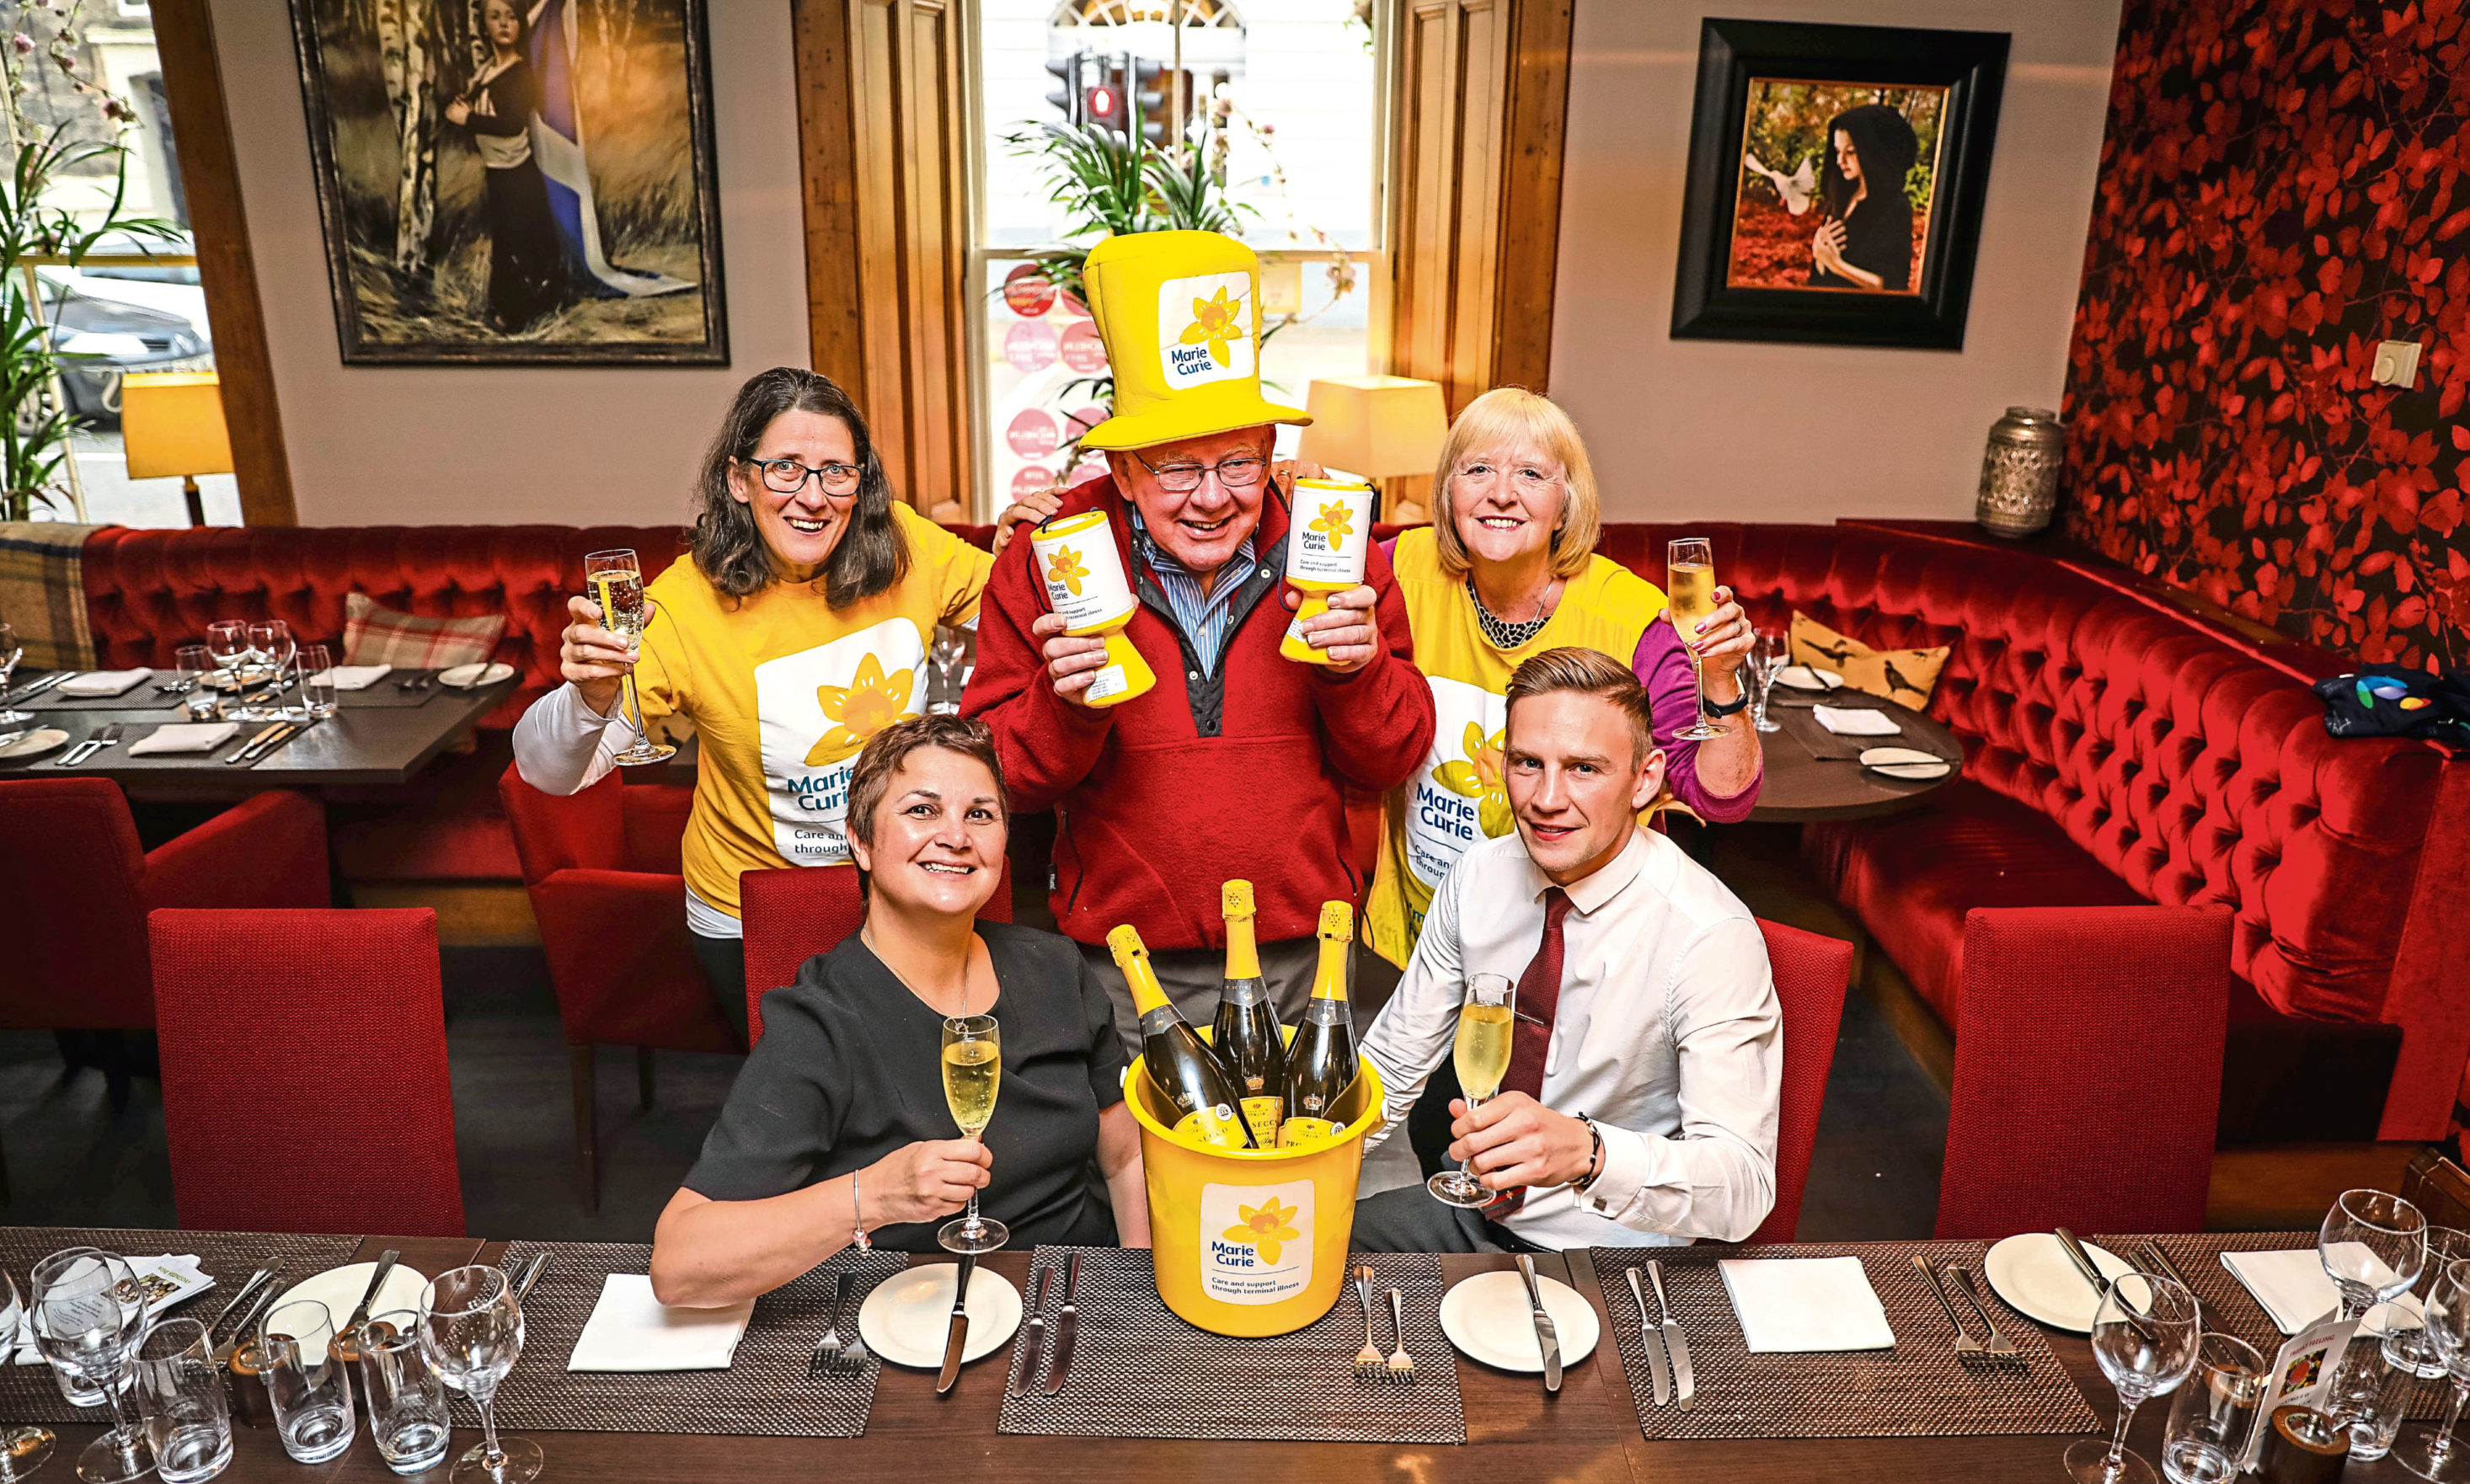 Martine Sinclair and Lee Deans, front, with, back from left, Alyson Johnston, Philip Gill and Marion Thomson from Marie Curie.